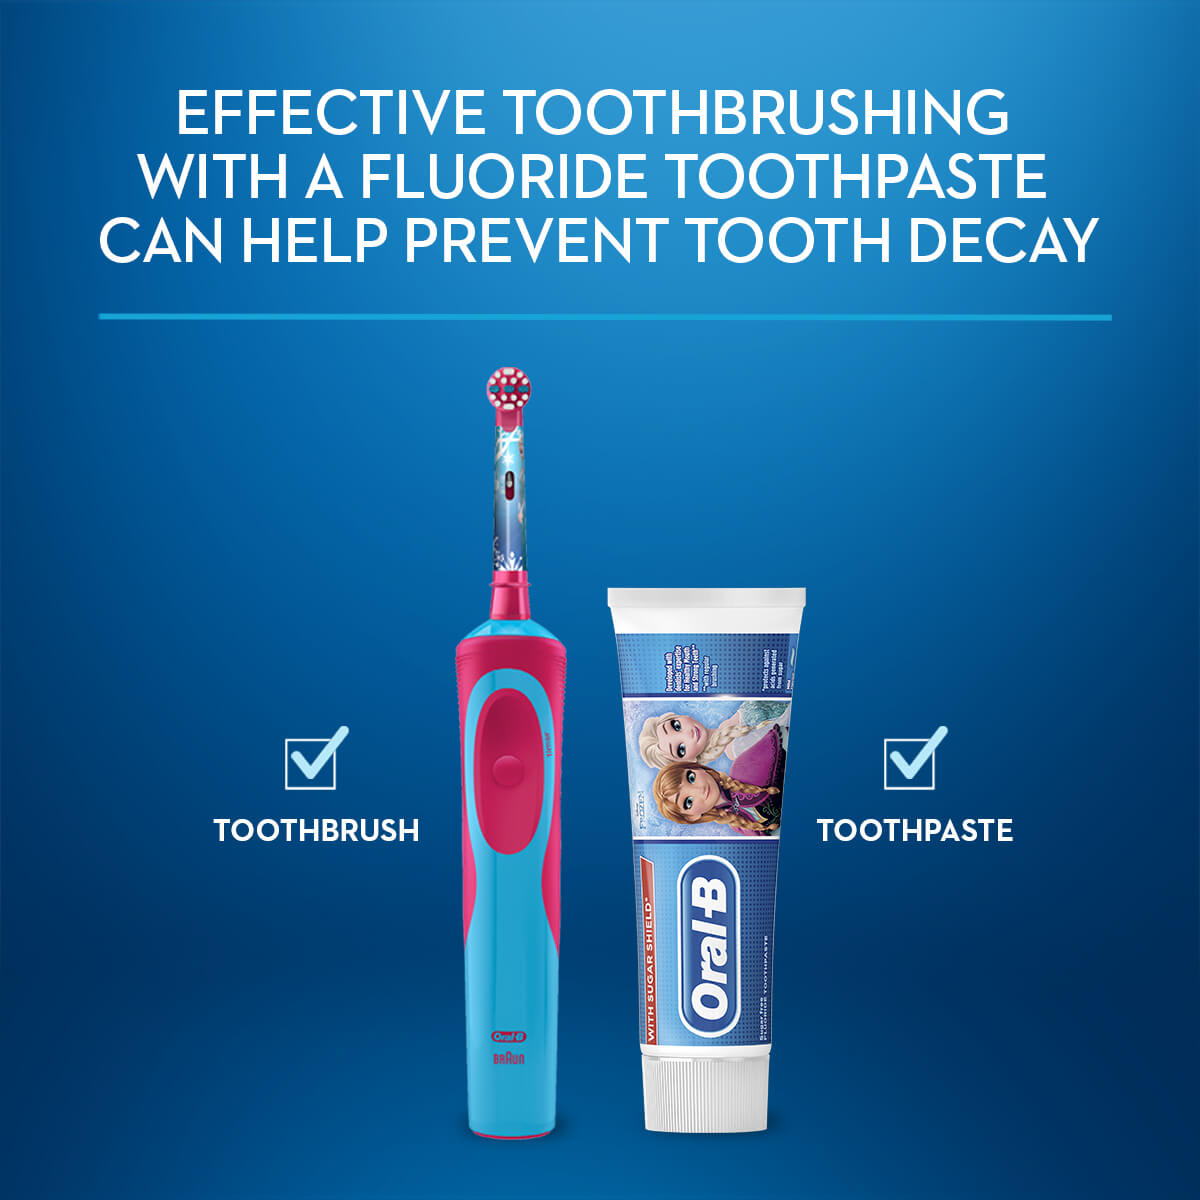 Electric toothbrush and fluoride toothpaste to avoid tooth decay